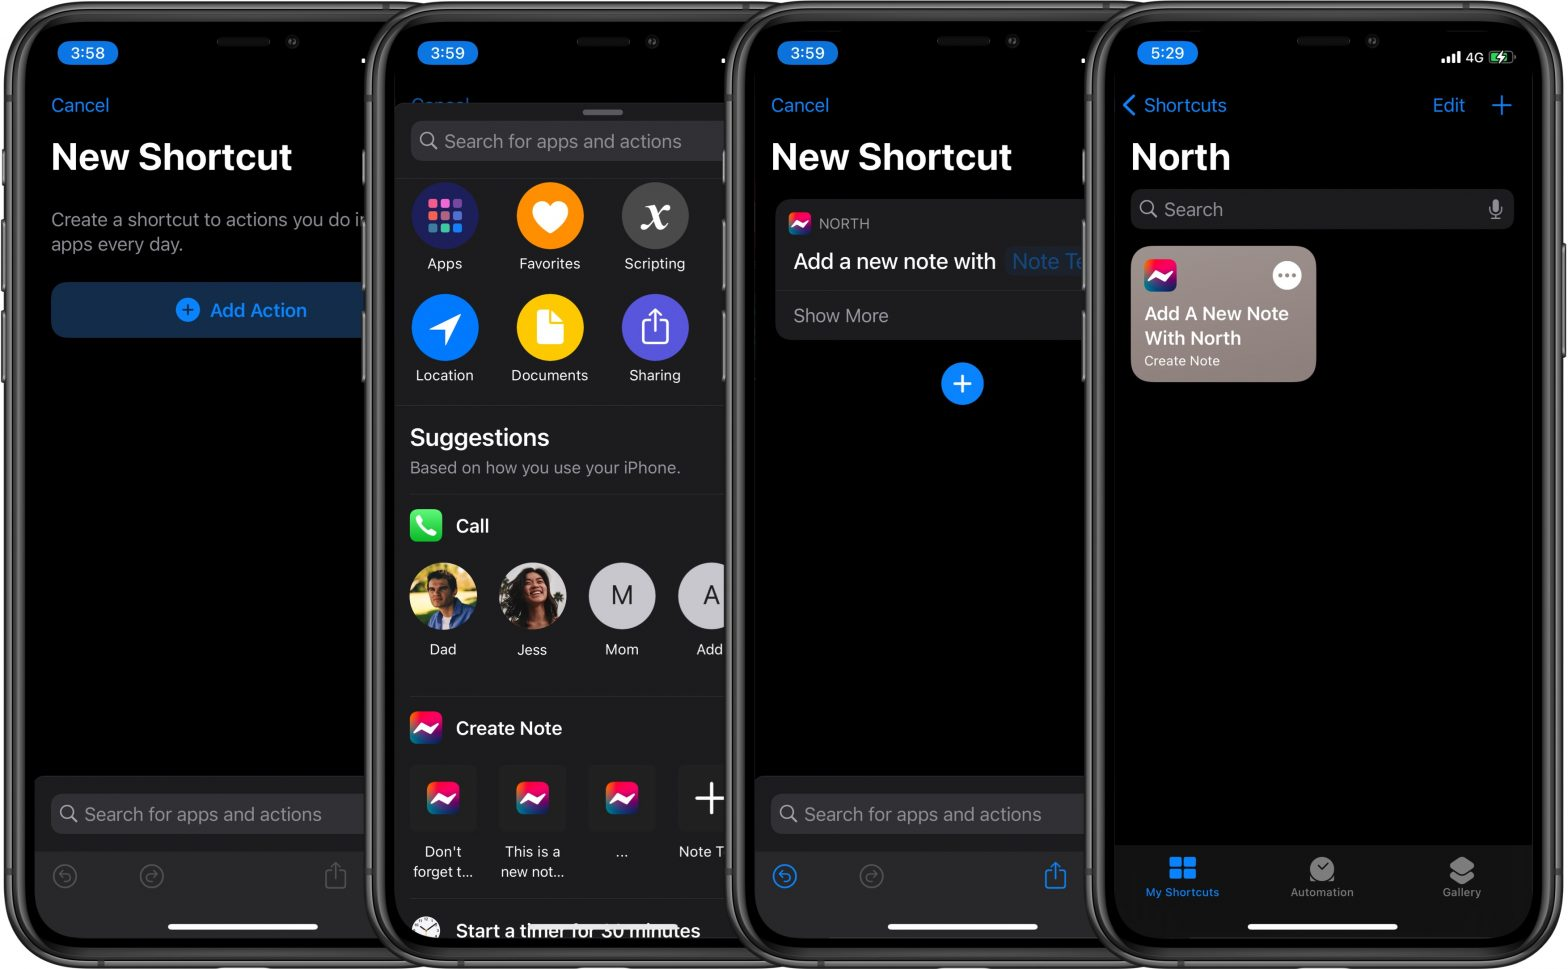 North Notes - How to create a Siri Shortcut for North